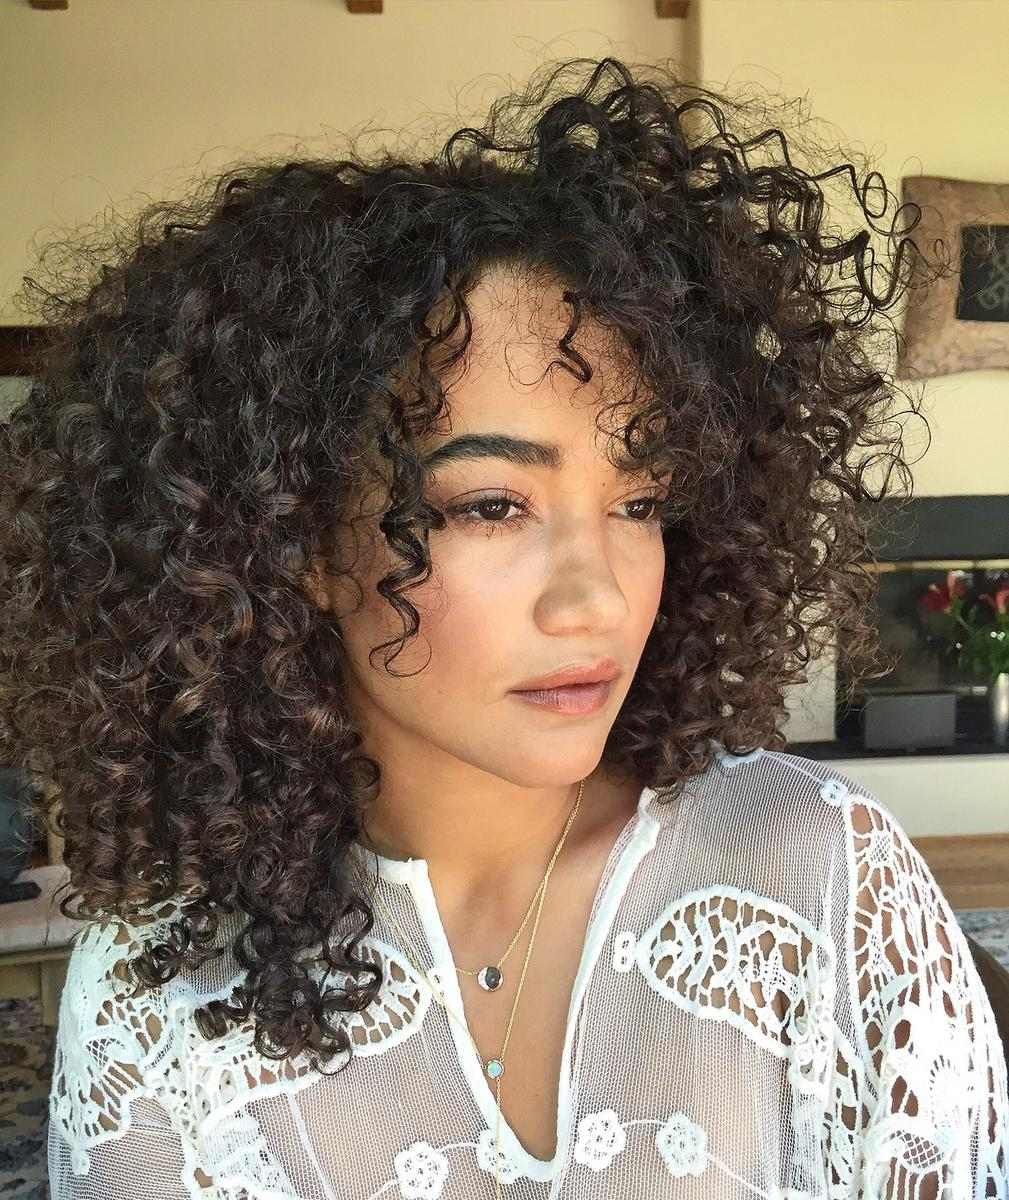 Instagram Beauty Royal Flush Rose Glow Curly Hair